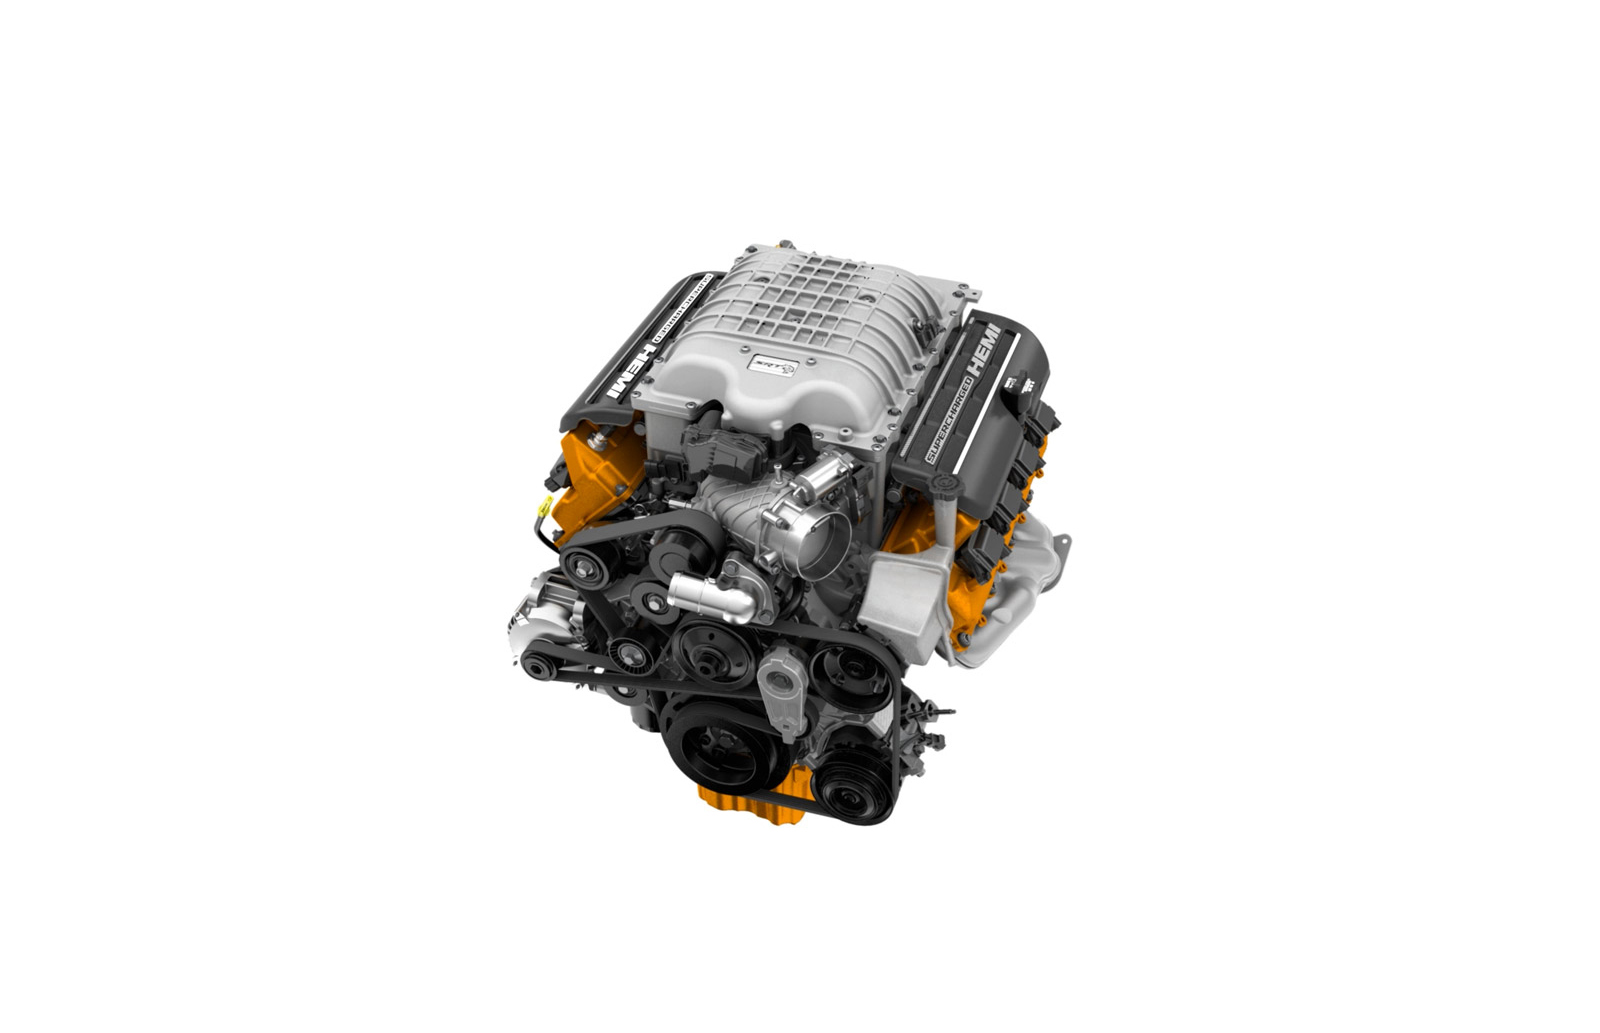 The Hellcat Engine Will Fit In The 2020 Jeep Gladiator And Wrangler